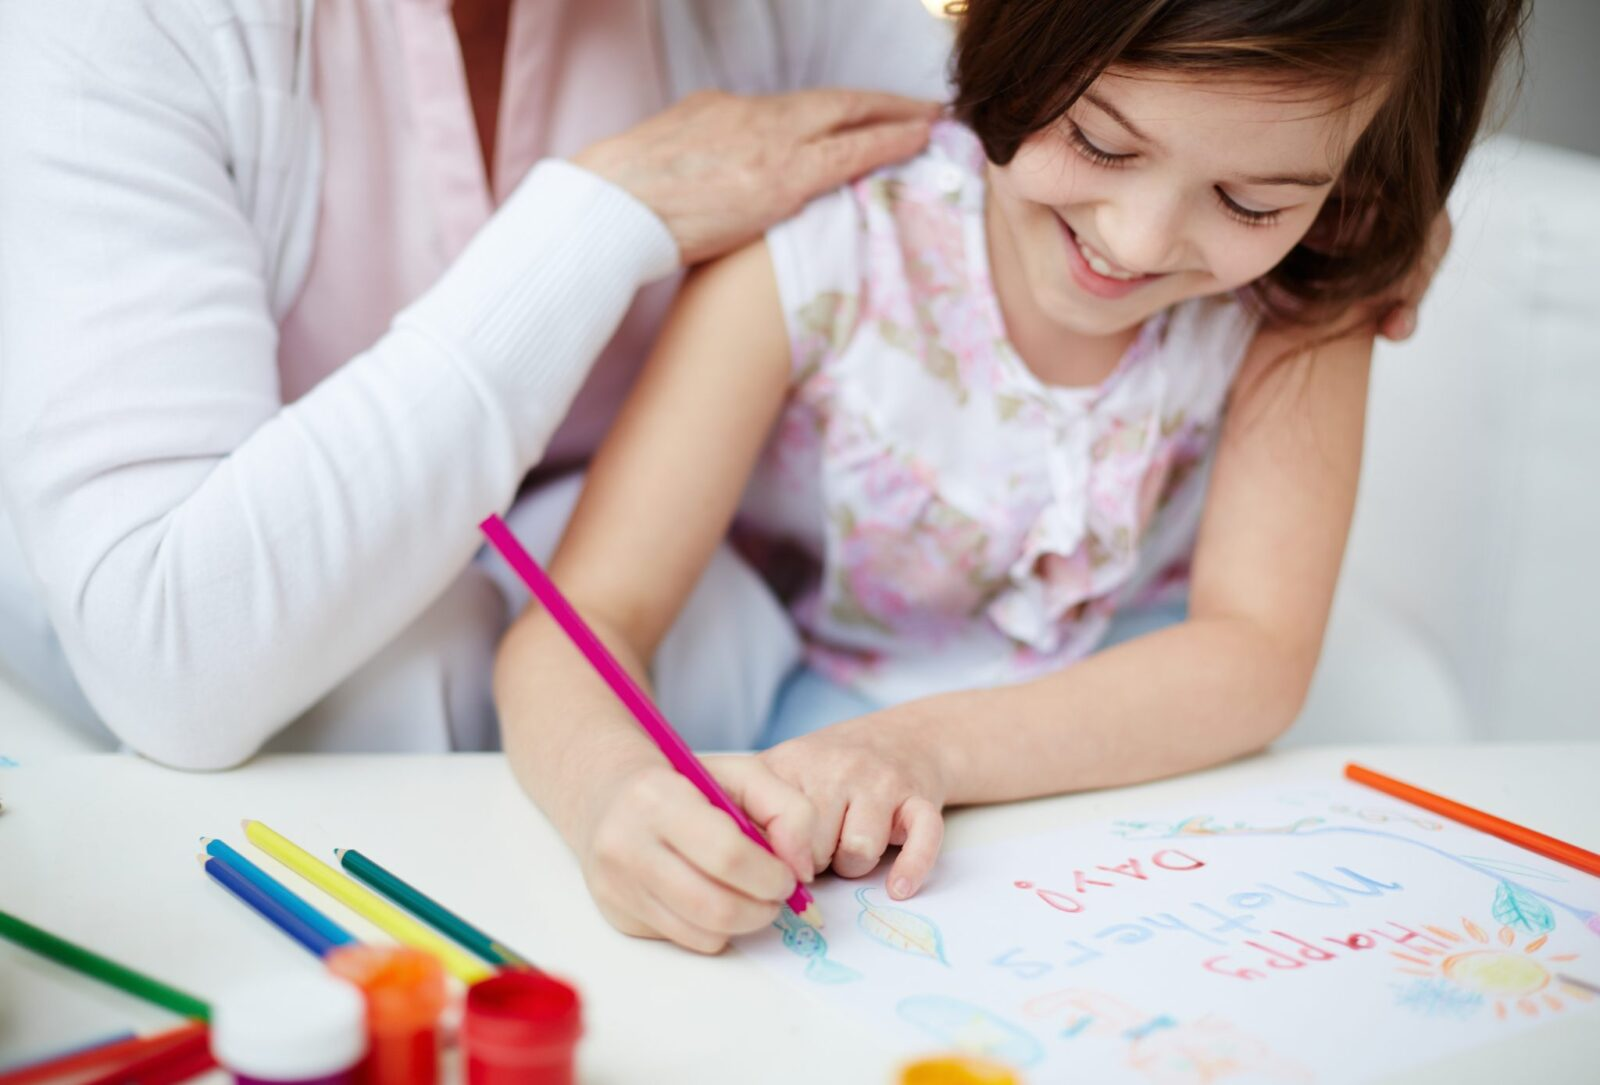 Mother's Day celebration ideas for school and the classroom